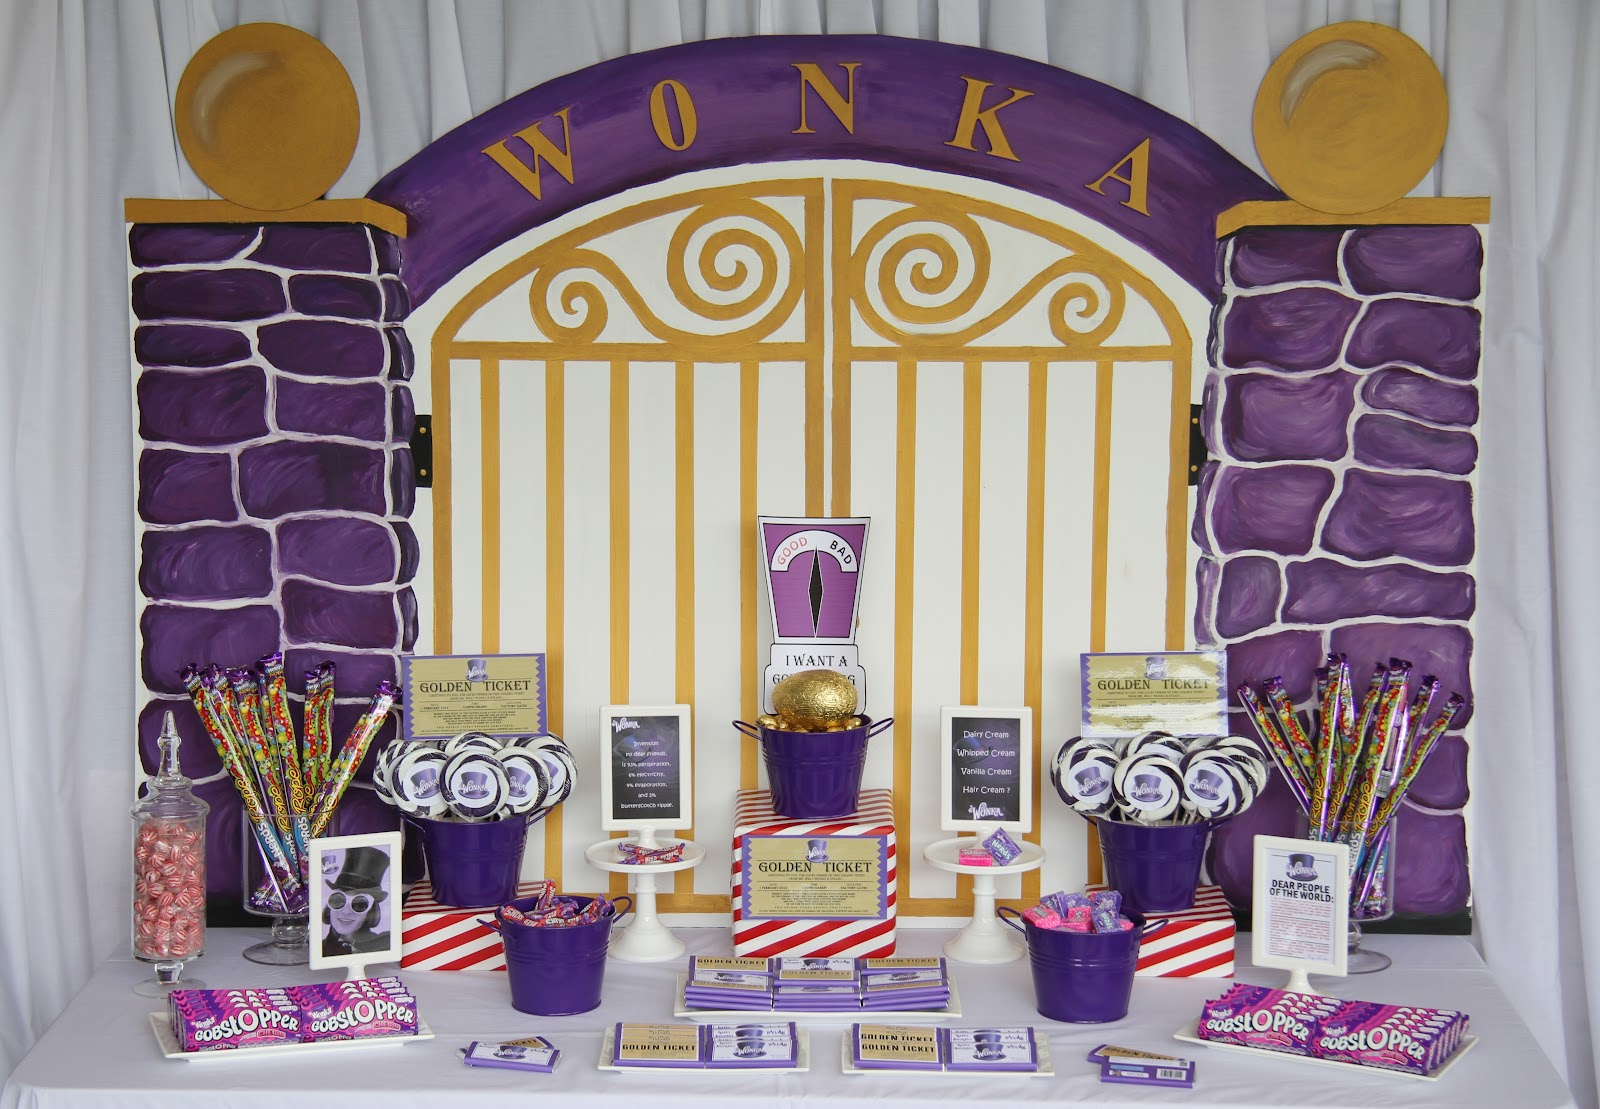 Leonie's Cakes and Parties . . . . .: WONKA Golden Ticket